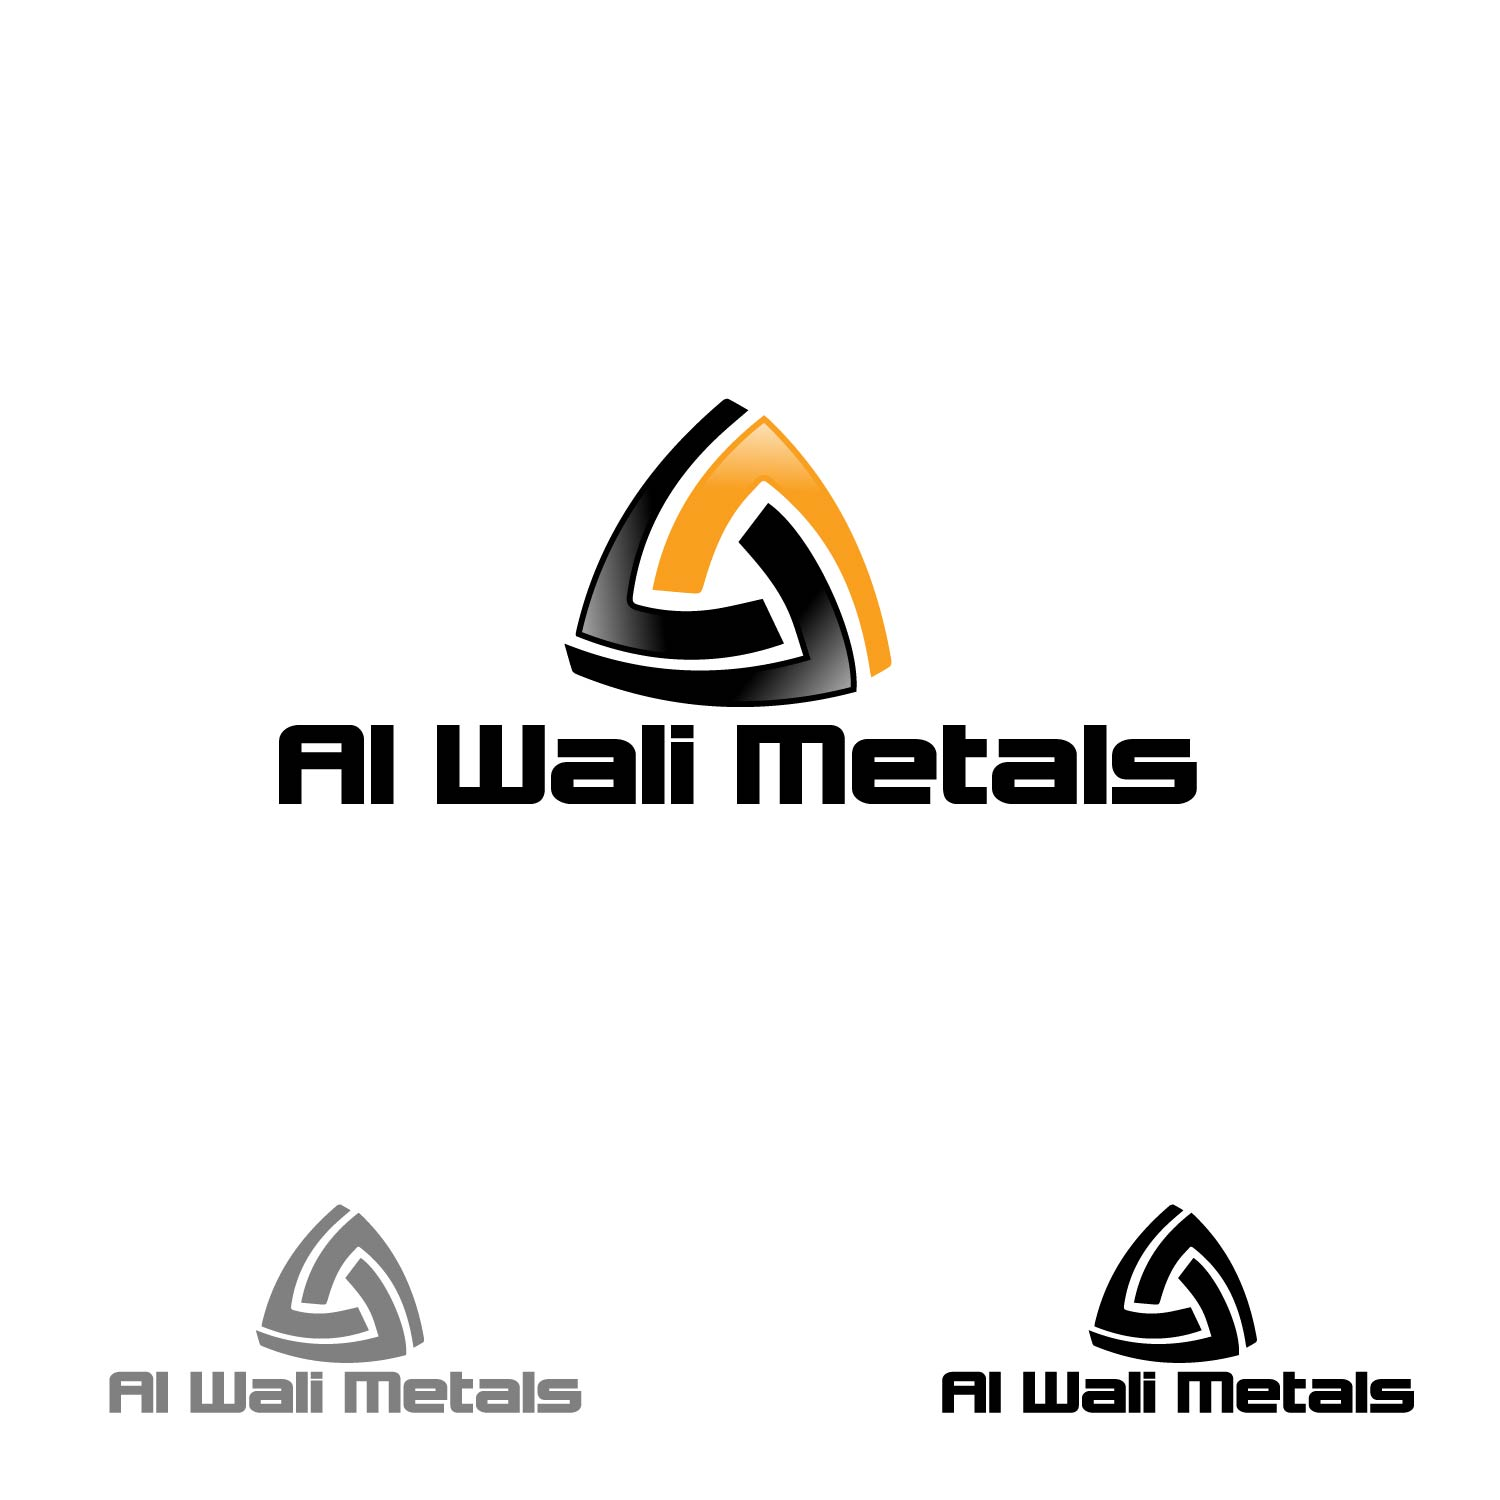 Logo Design by lagalag - Entry No. 141 in the Logo Design Contest Inspiring Logo Design for Al Wali Metals.